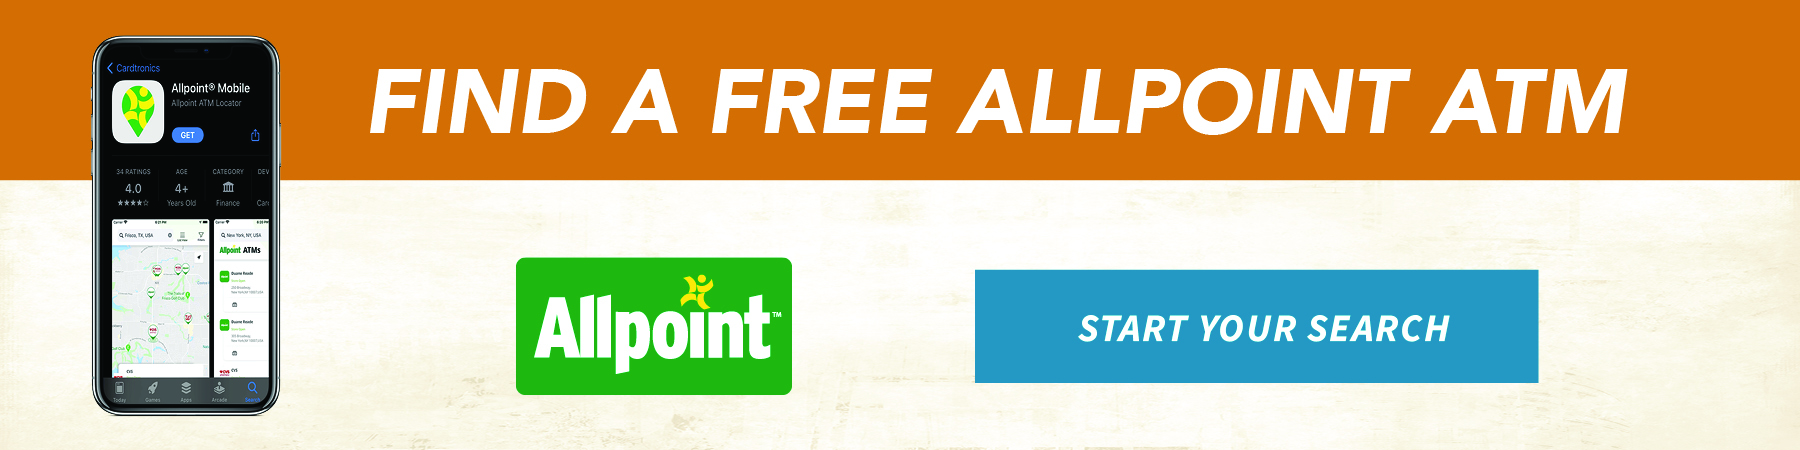 Find a Free Allpoint ATM Location